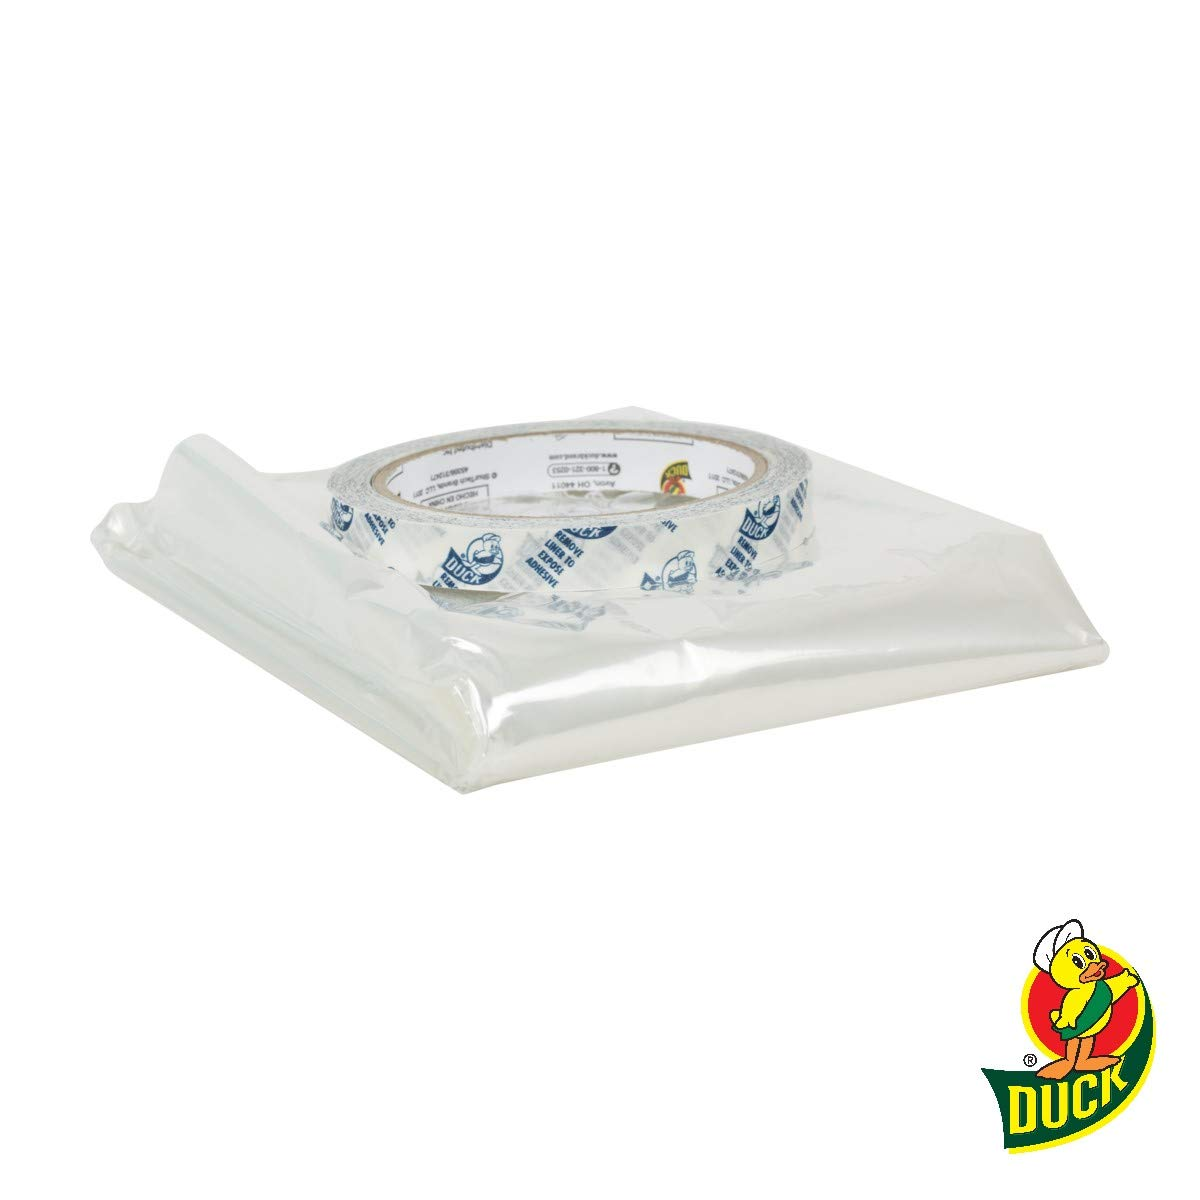 Duck Brand Indoor Shrink Film Window Kit, 62 x 420 Inches, 10 Pack, Clear, E-Commerce Packaging (285233) Shurtech